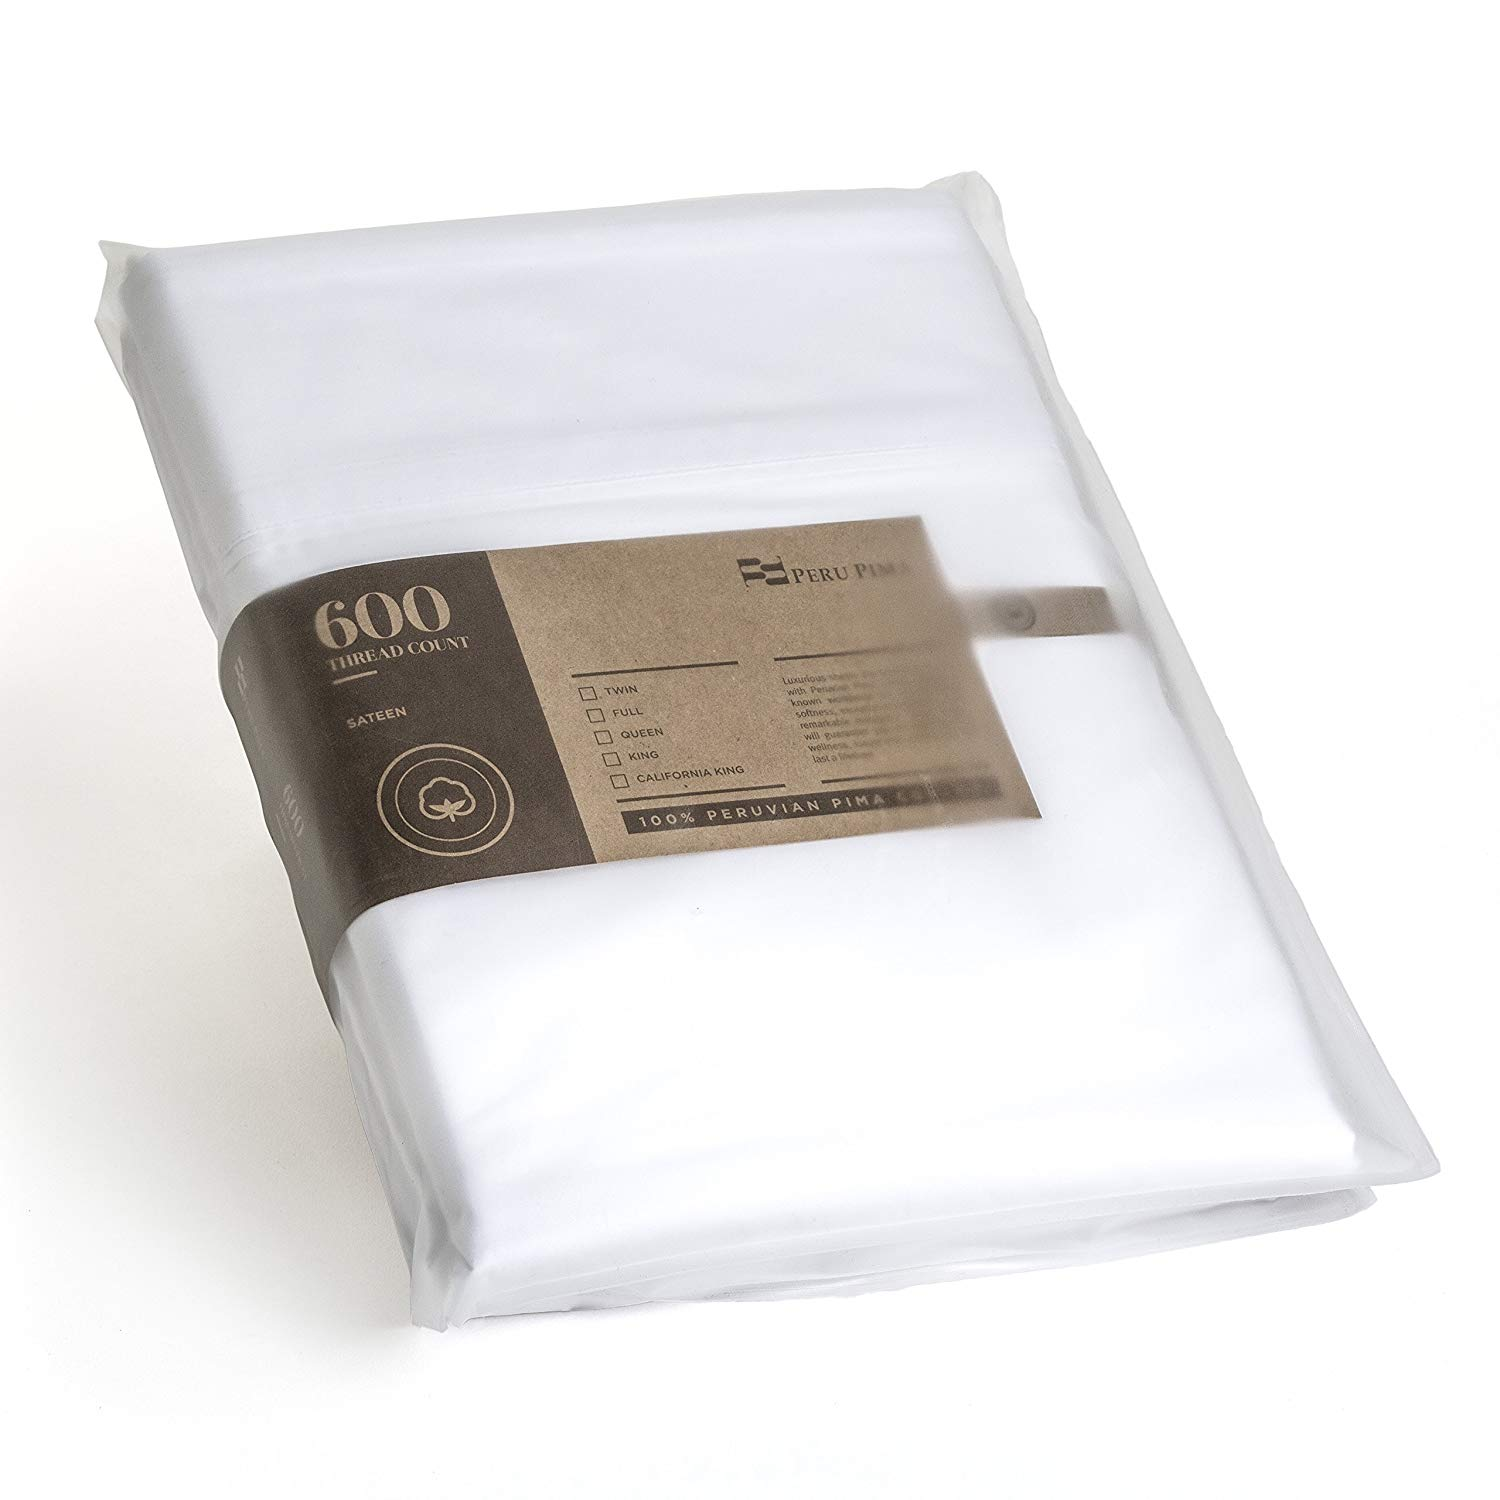 Image of Peruvian Pima sheets 600 thread count - Best 600 Thread Count Sheets